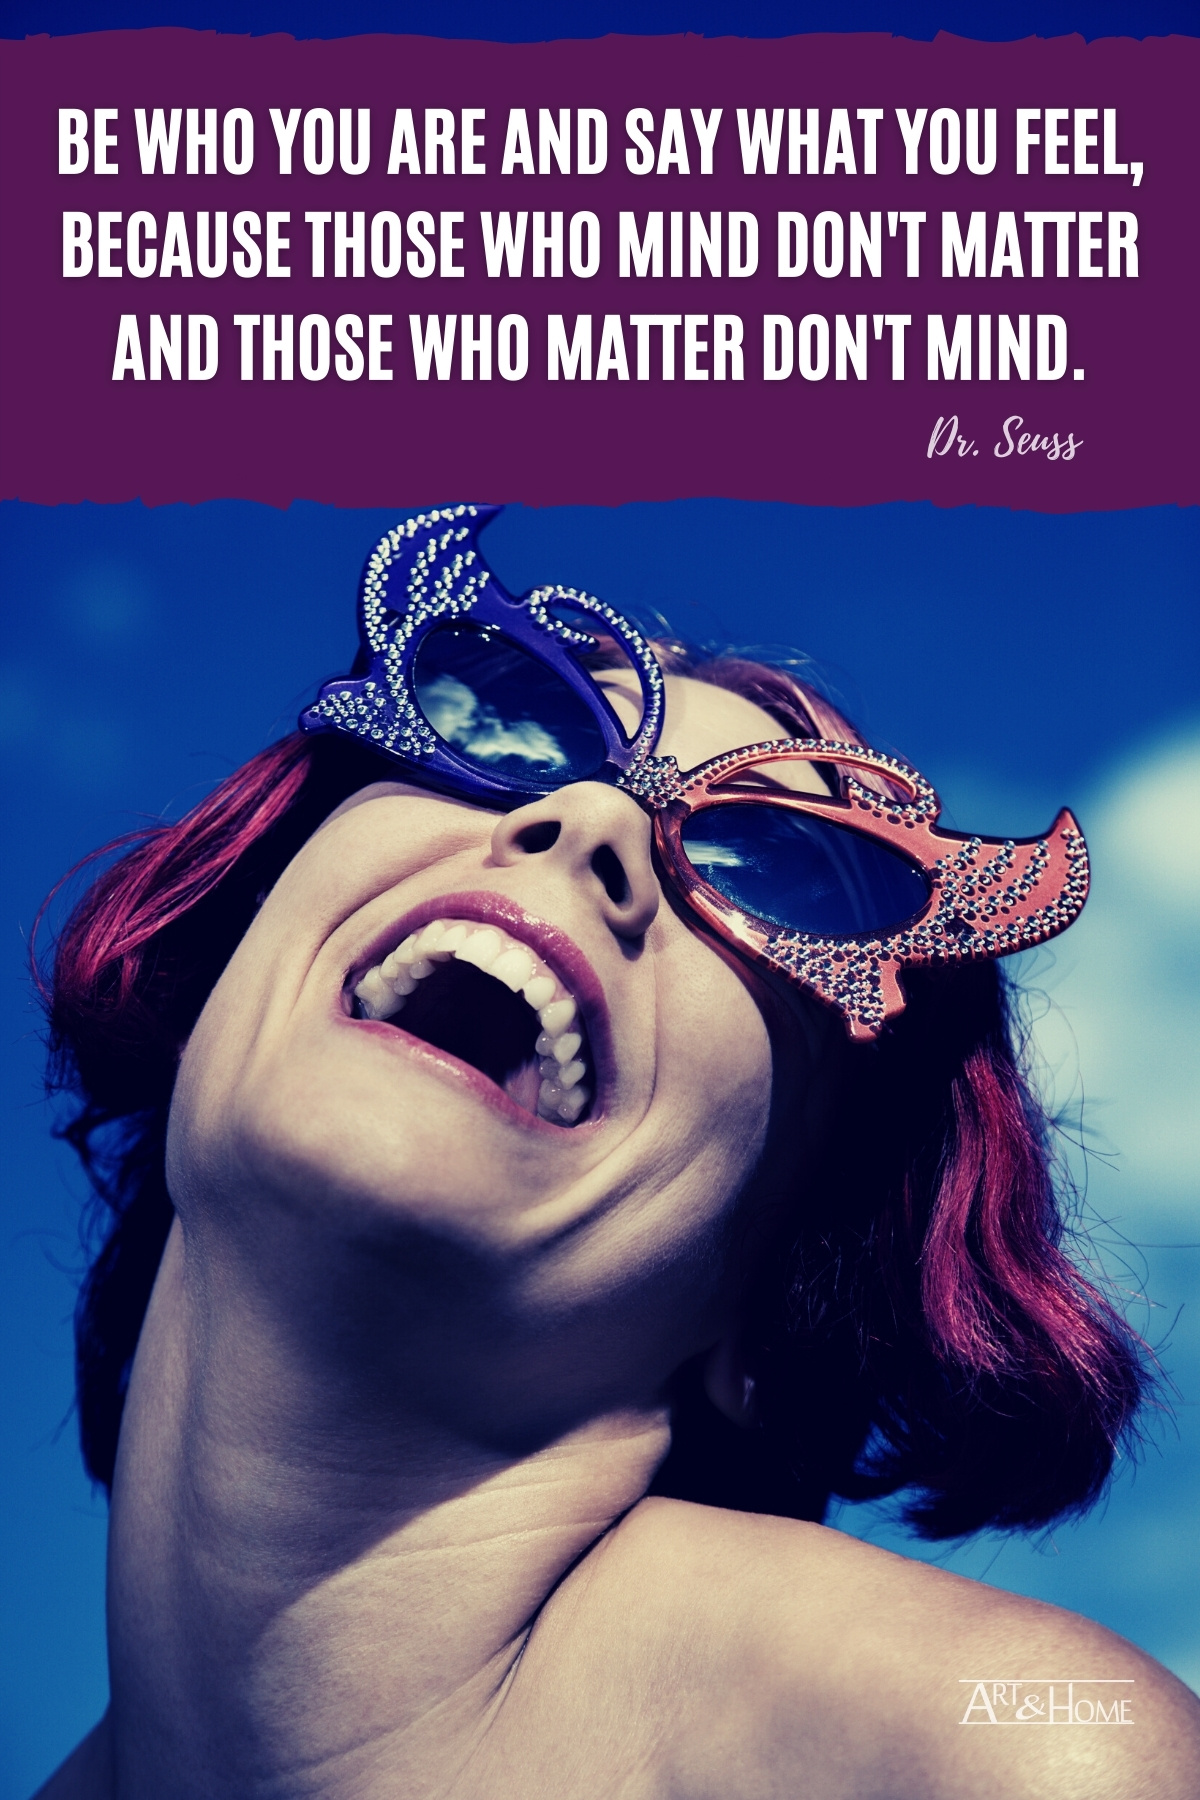 Dr Seuss Those Who Matter Don't Mind Quote